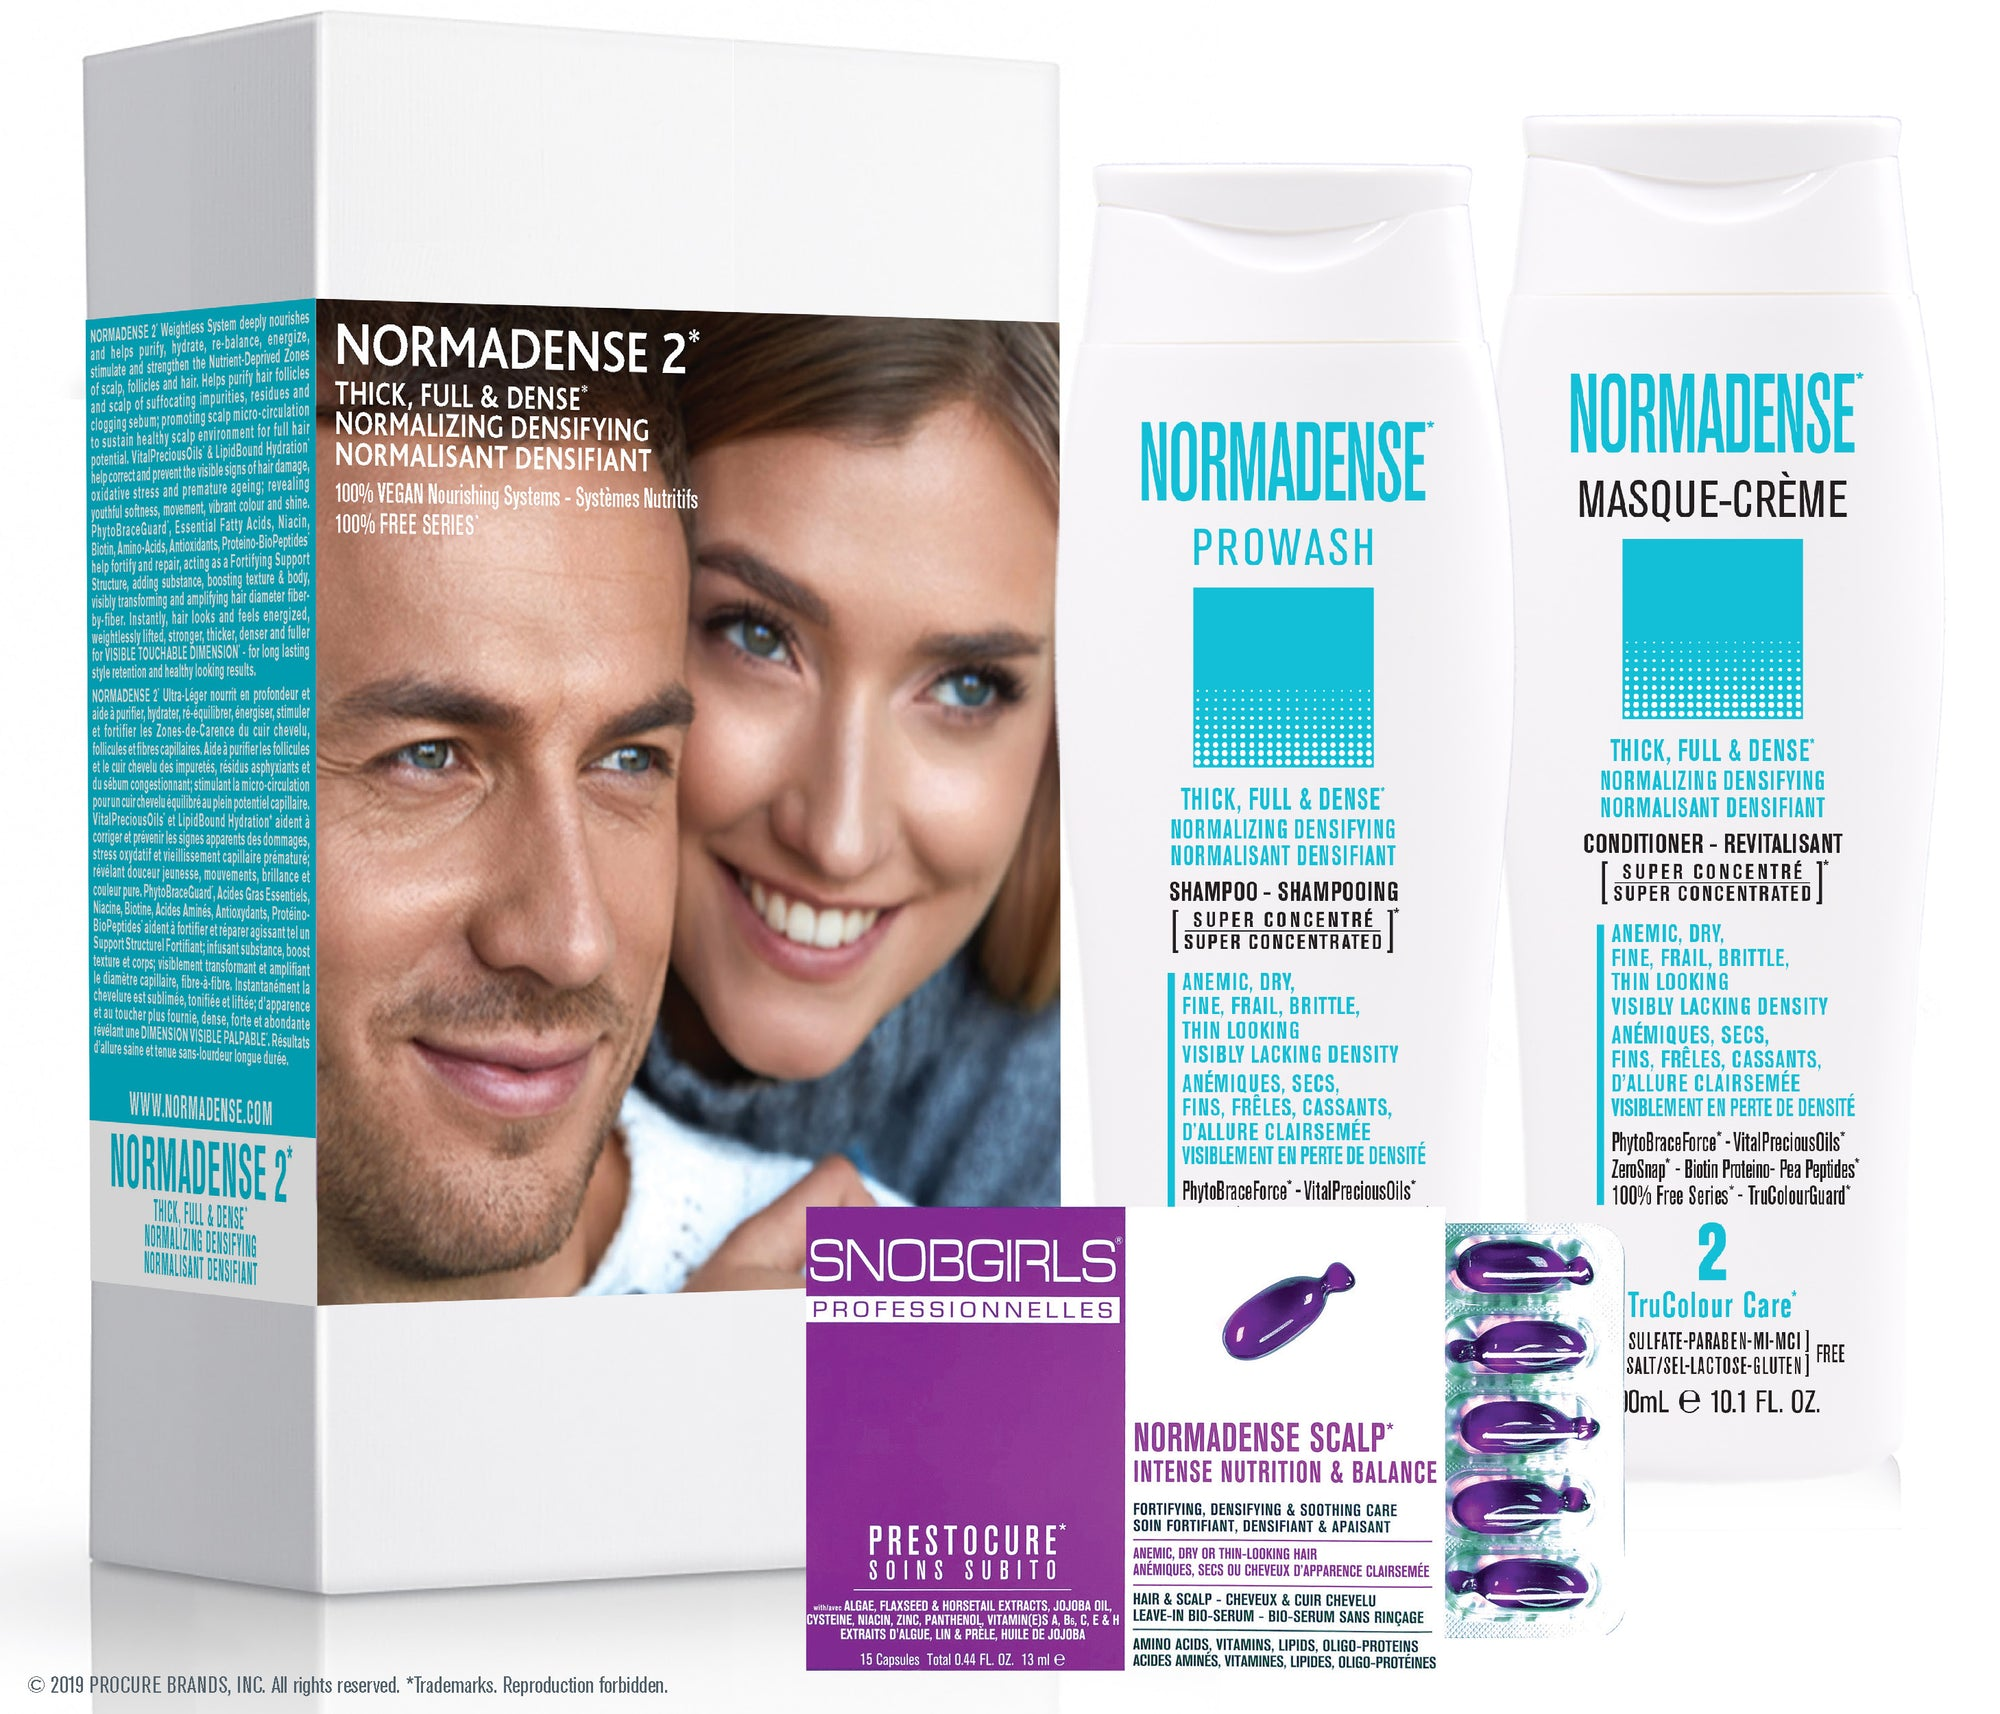 Trio NORMADENSE 2 Thick, Full & Dense Normalizing Densifying - SNOBGIRLS Canada